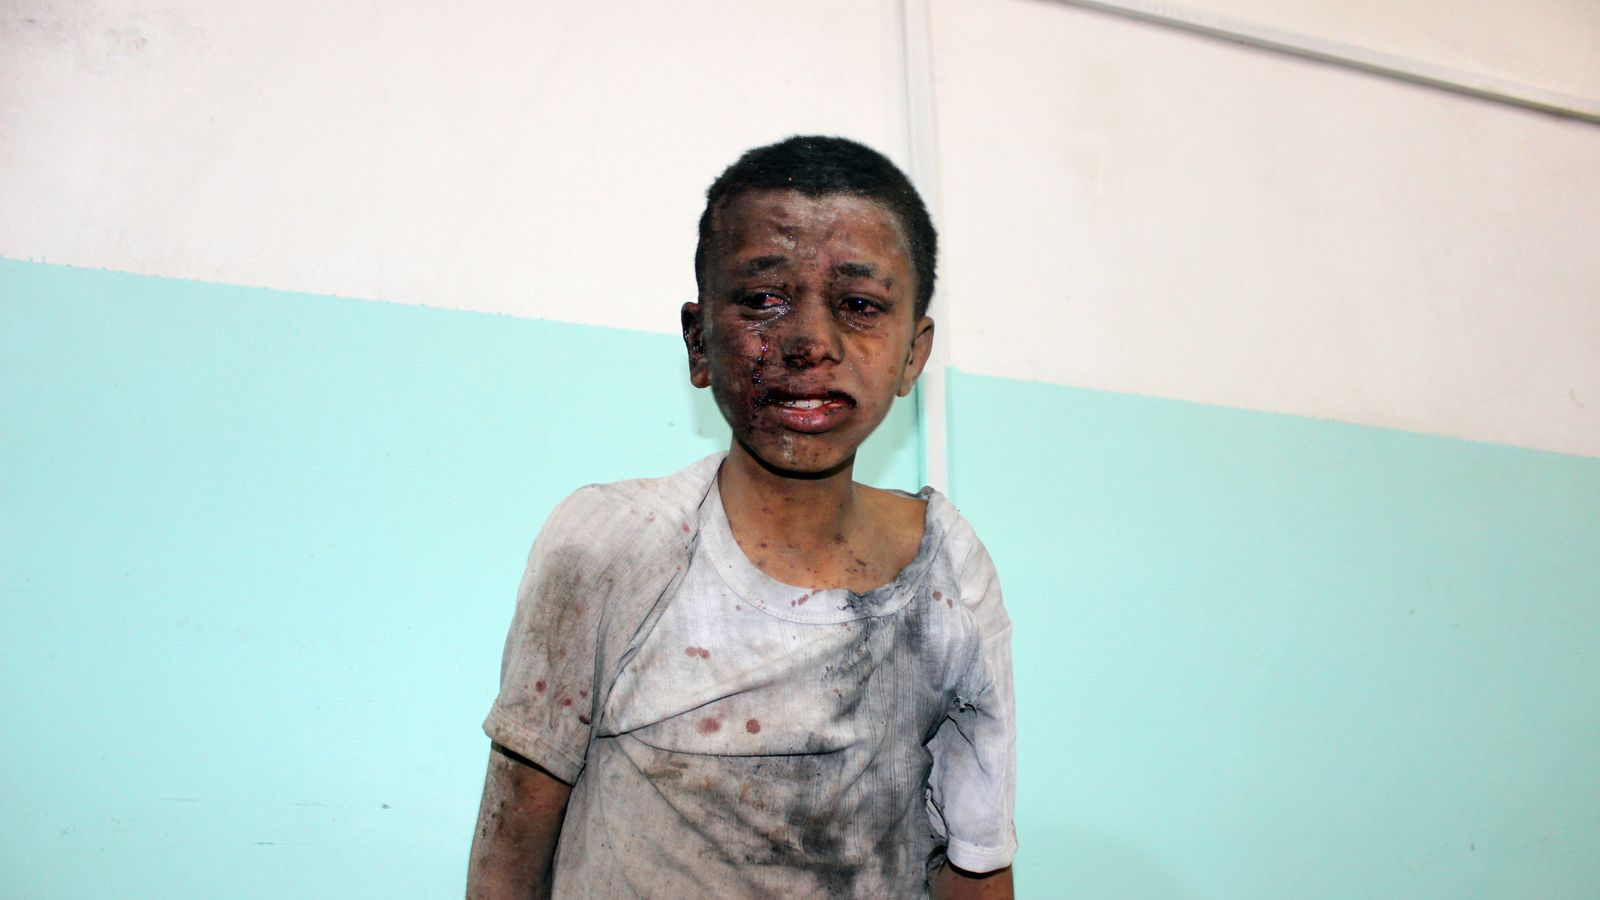 Airstrike on children's bus is 'a low point' in Yemen war - UNICEF